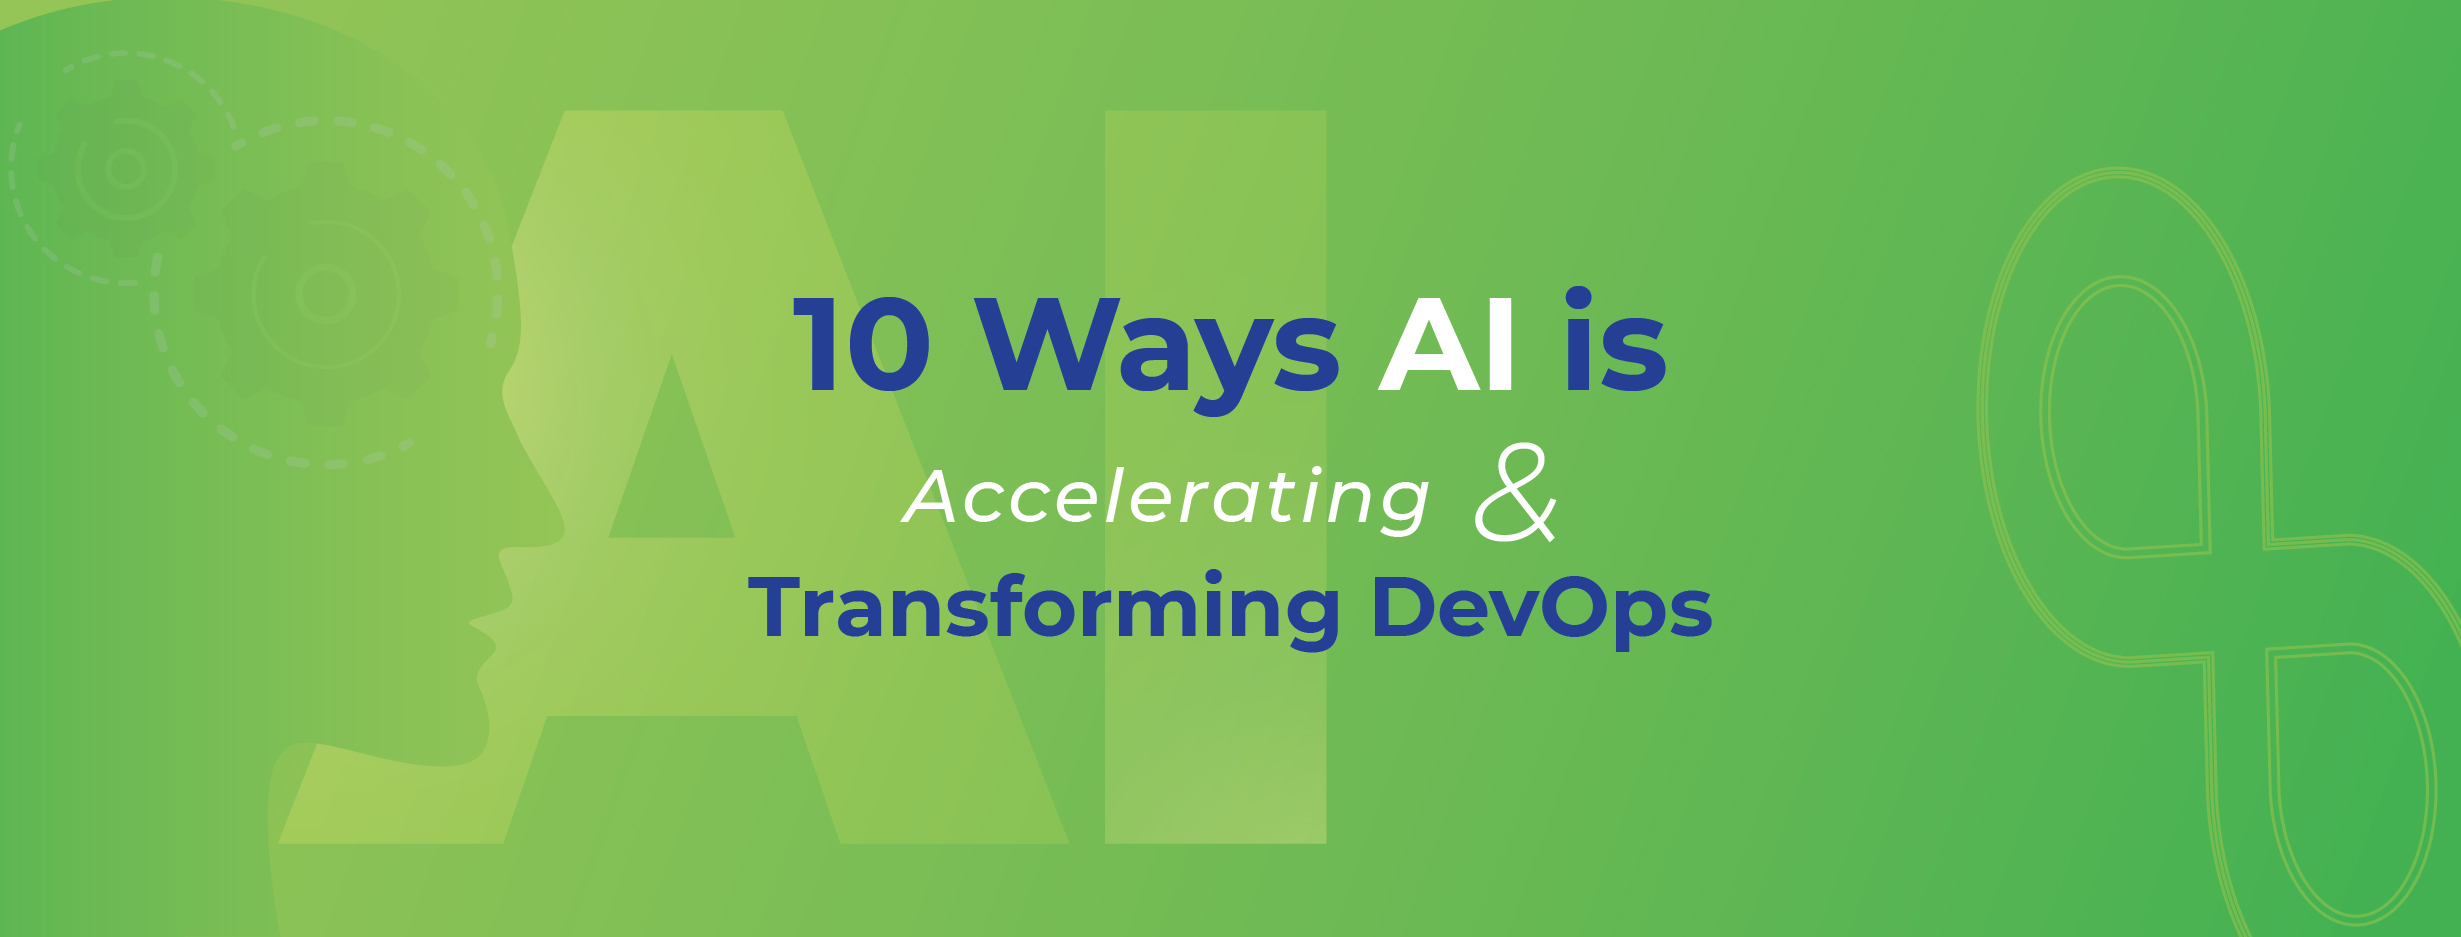 10 Ways AI is Accelerating & Transforming DevOps